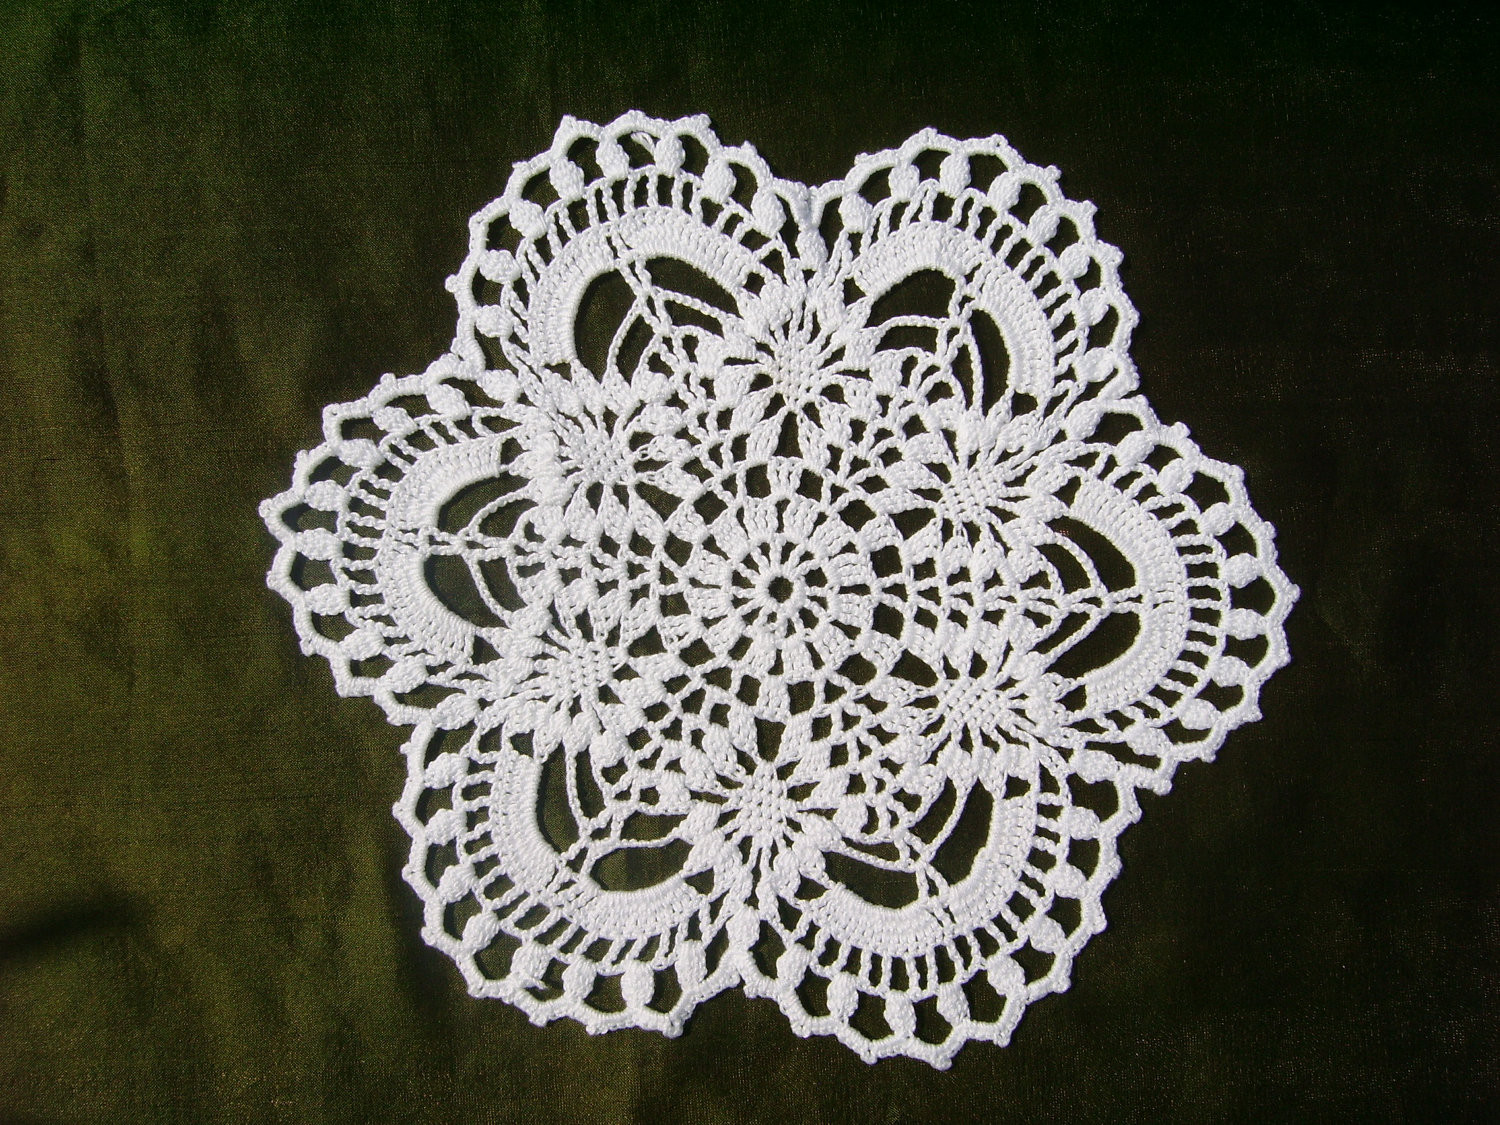 Grange News – Needlework Contest and Mother's Day Sale